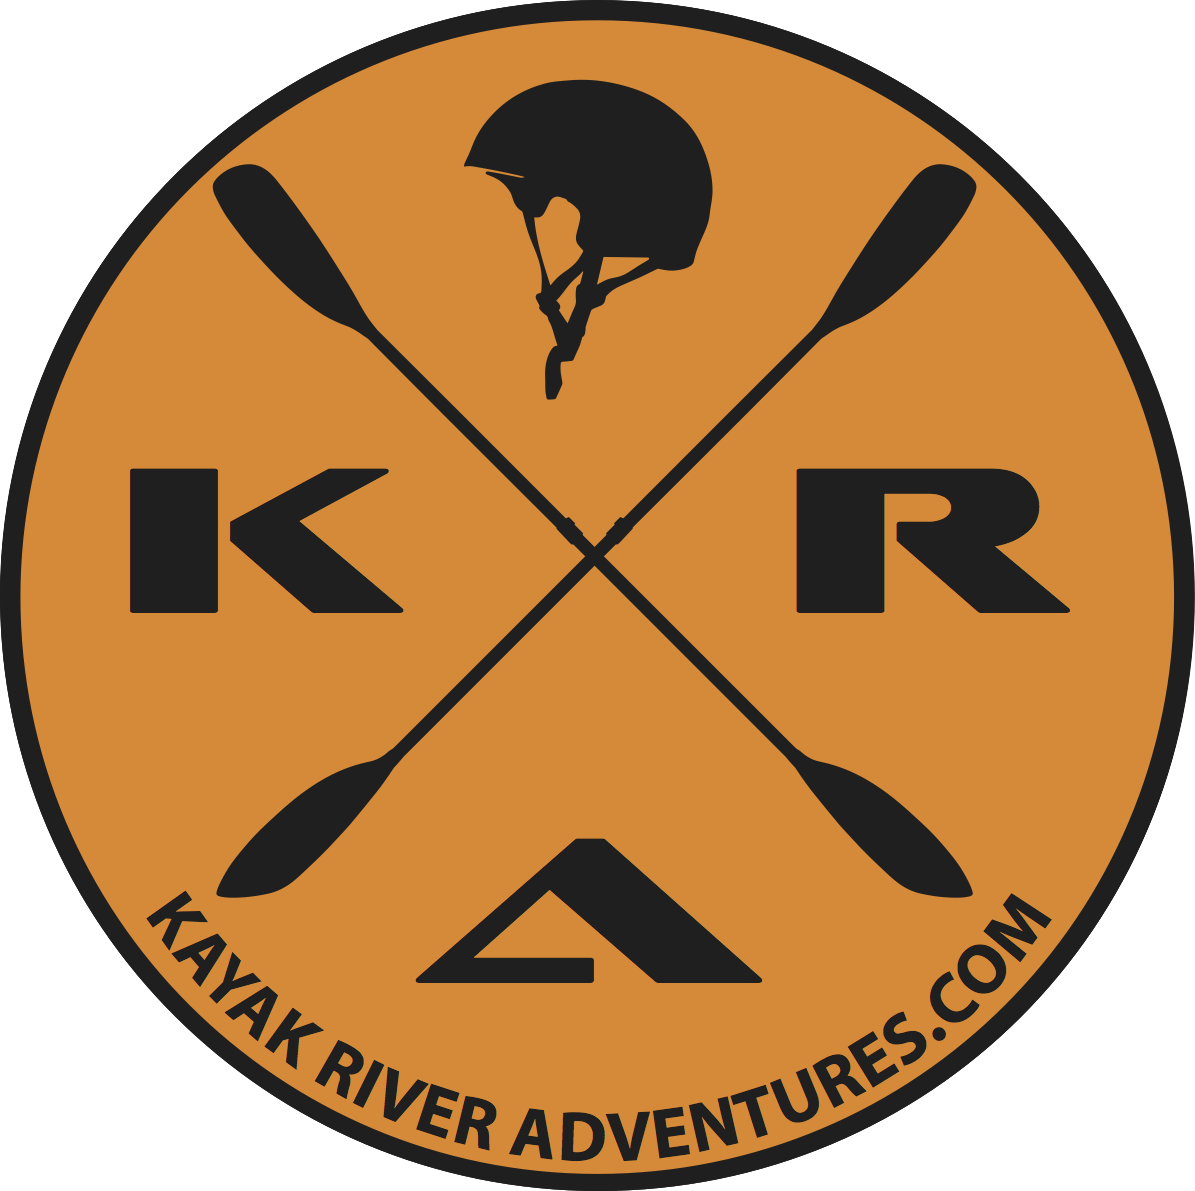 Kayak River Adventures